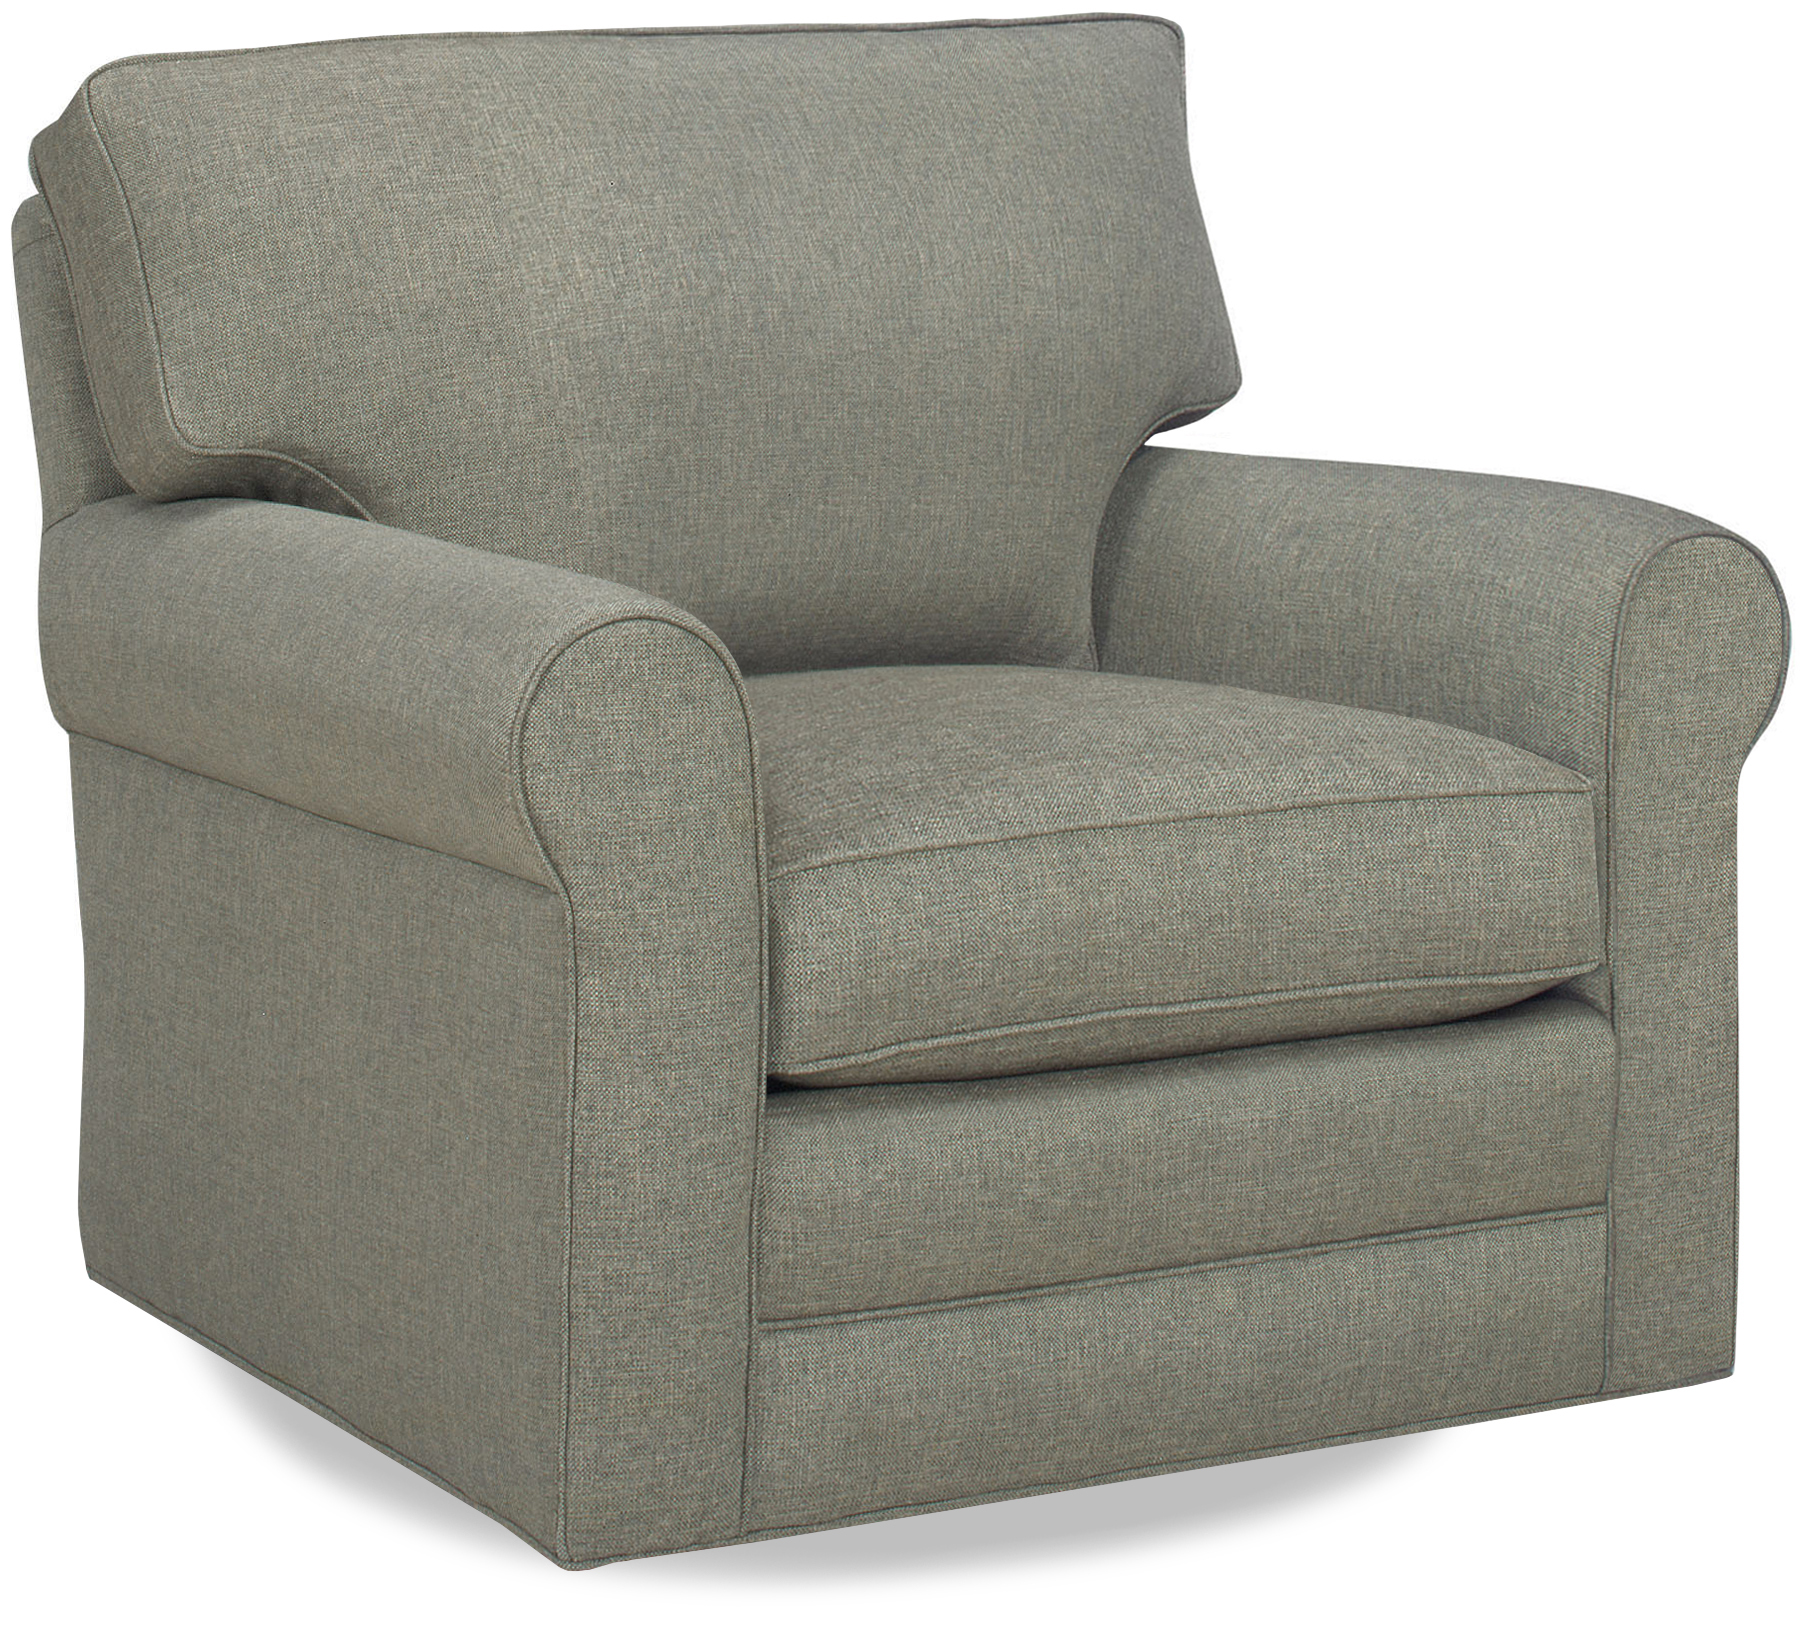 Corbin Swivel Chair By Temple Furniture 4215 S Riley S Furniture Mattress